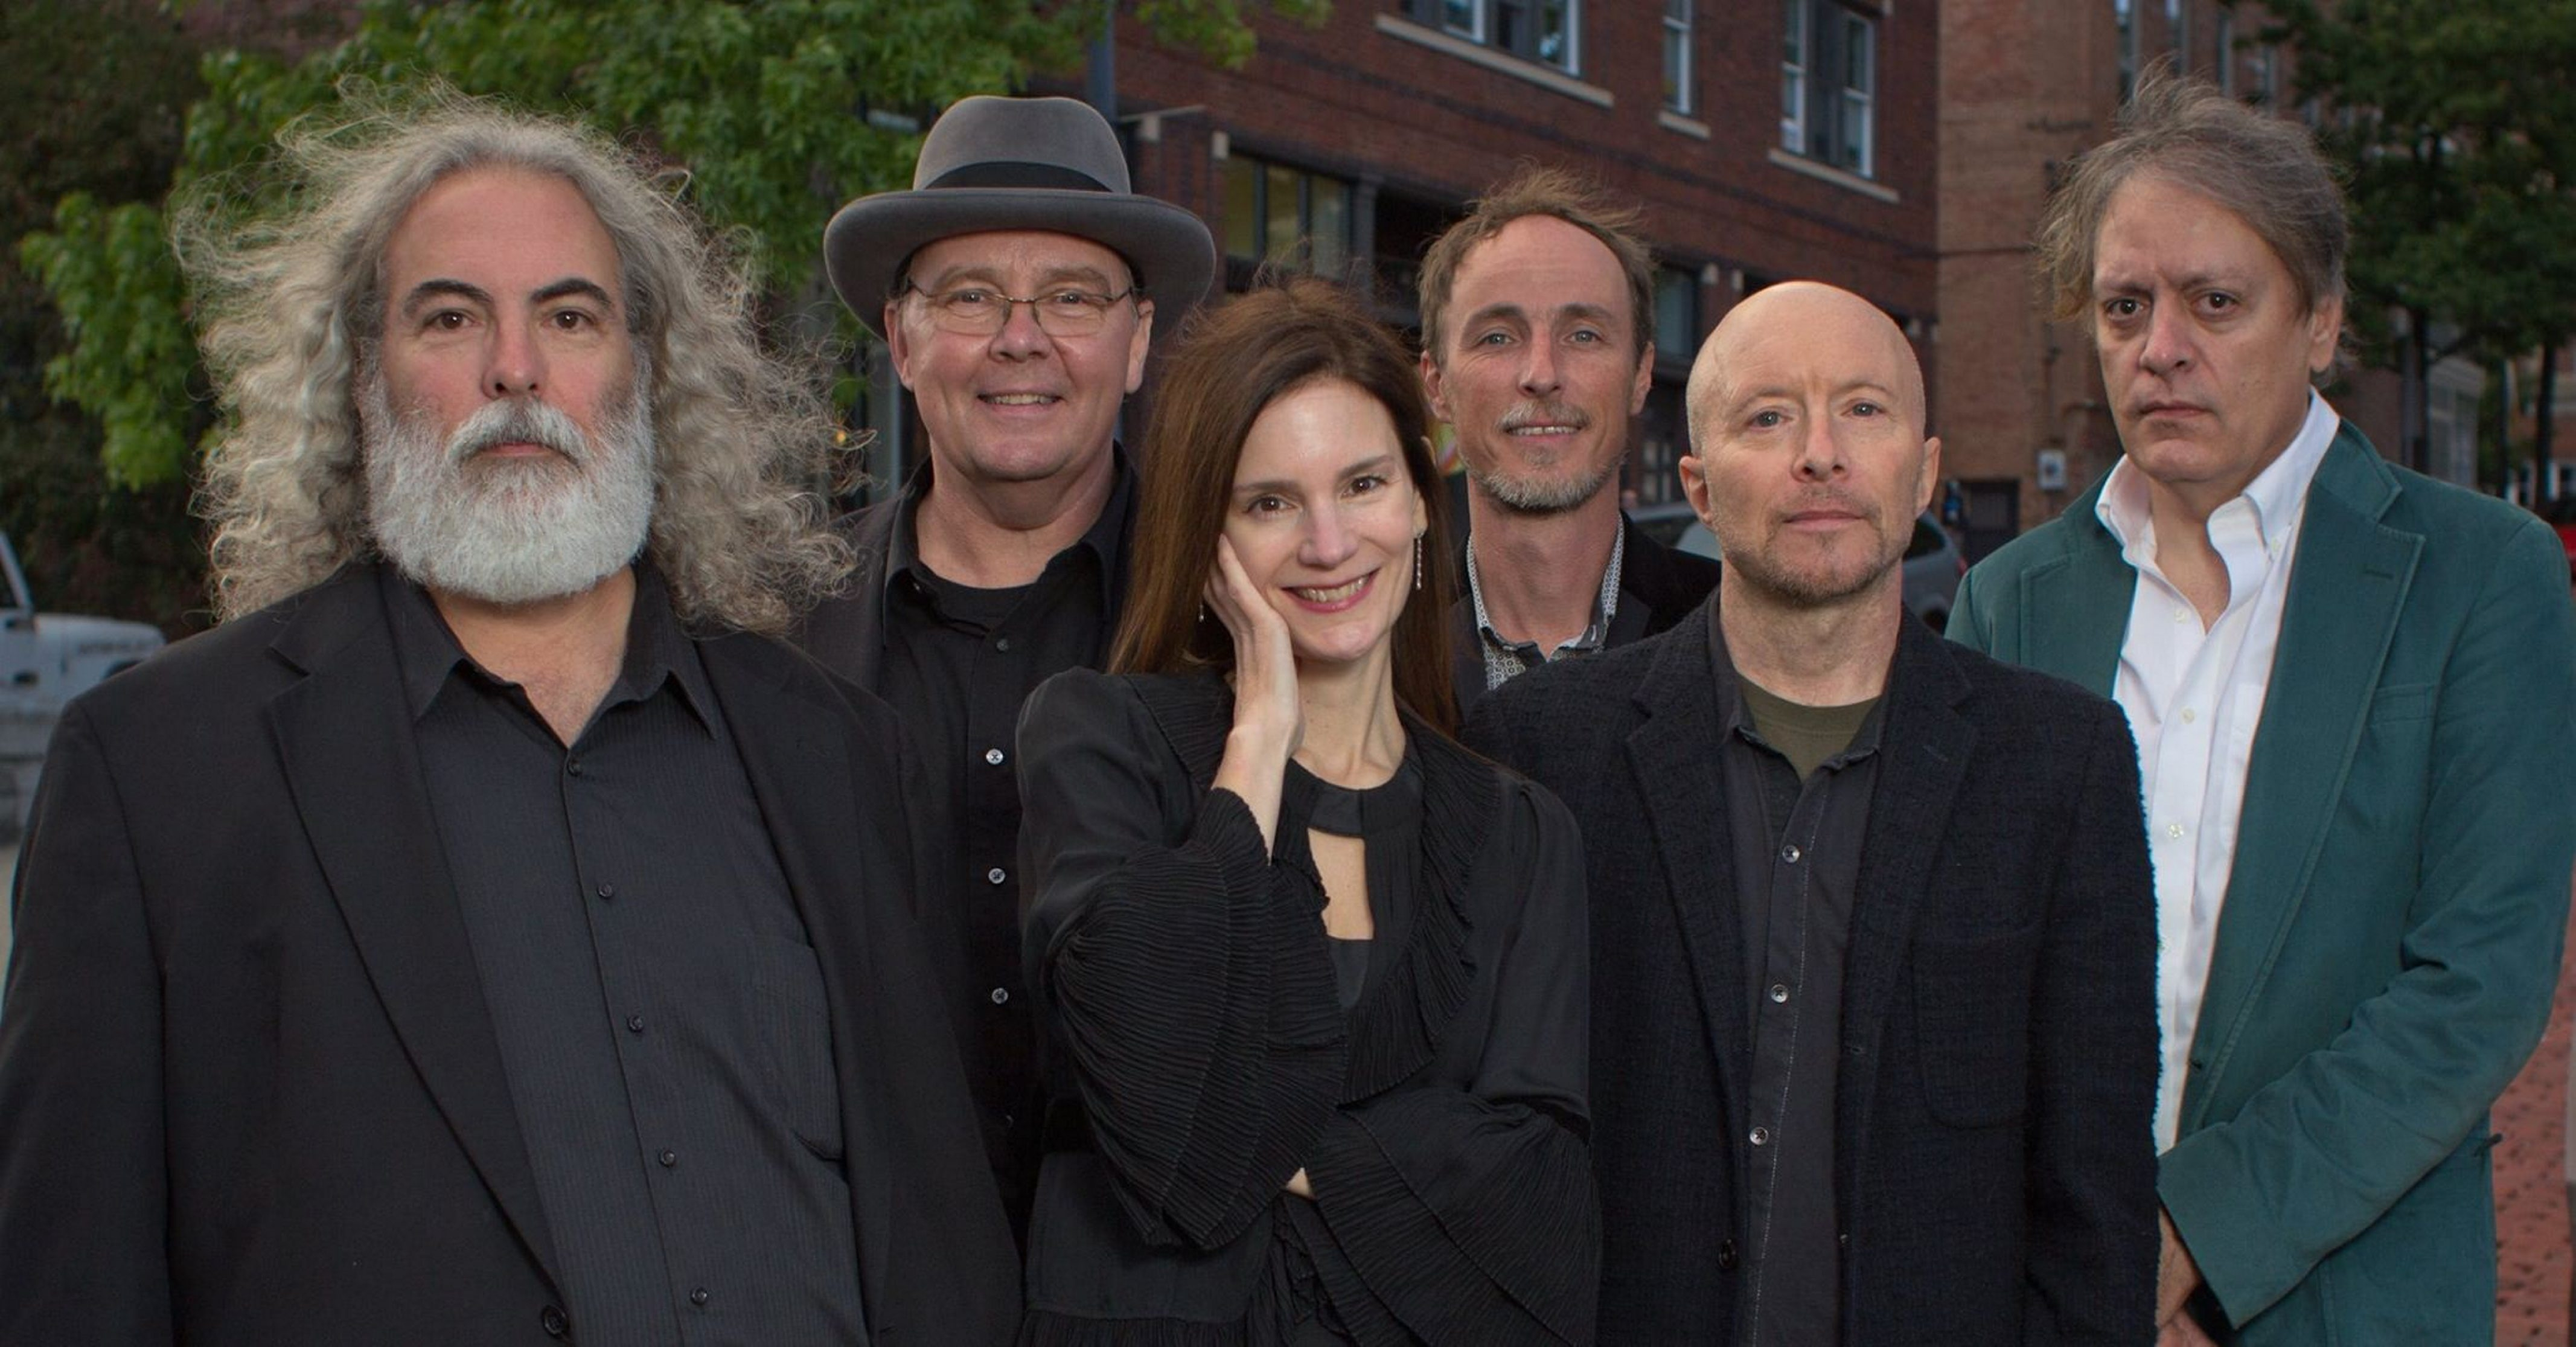 10,000 Maniacs play a special holiday show at the Sportsmen's Tavern on Dec. 18.